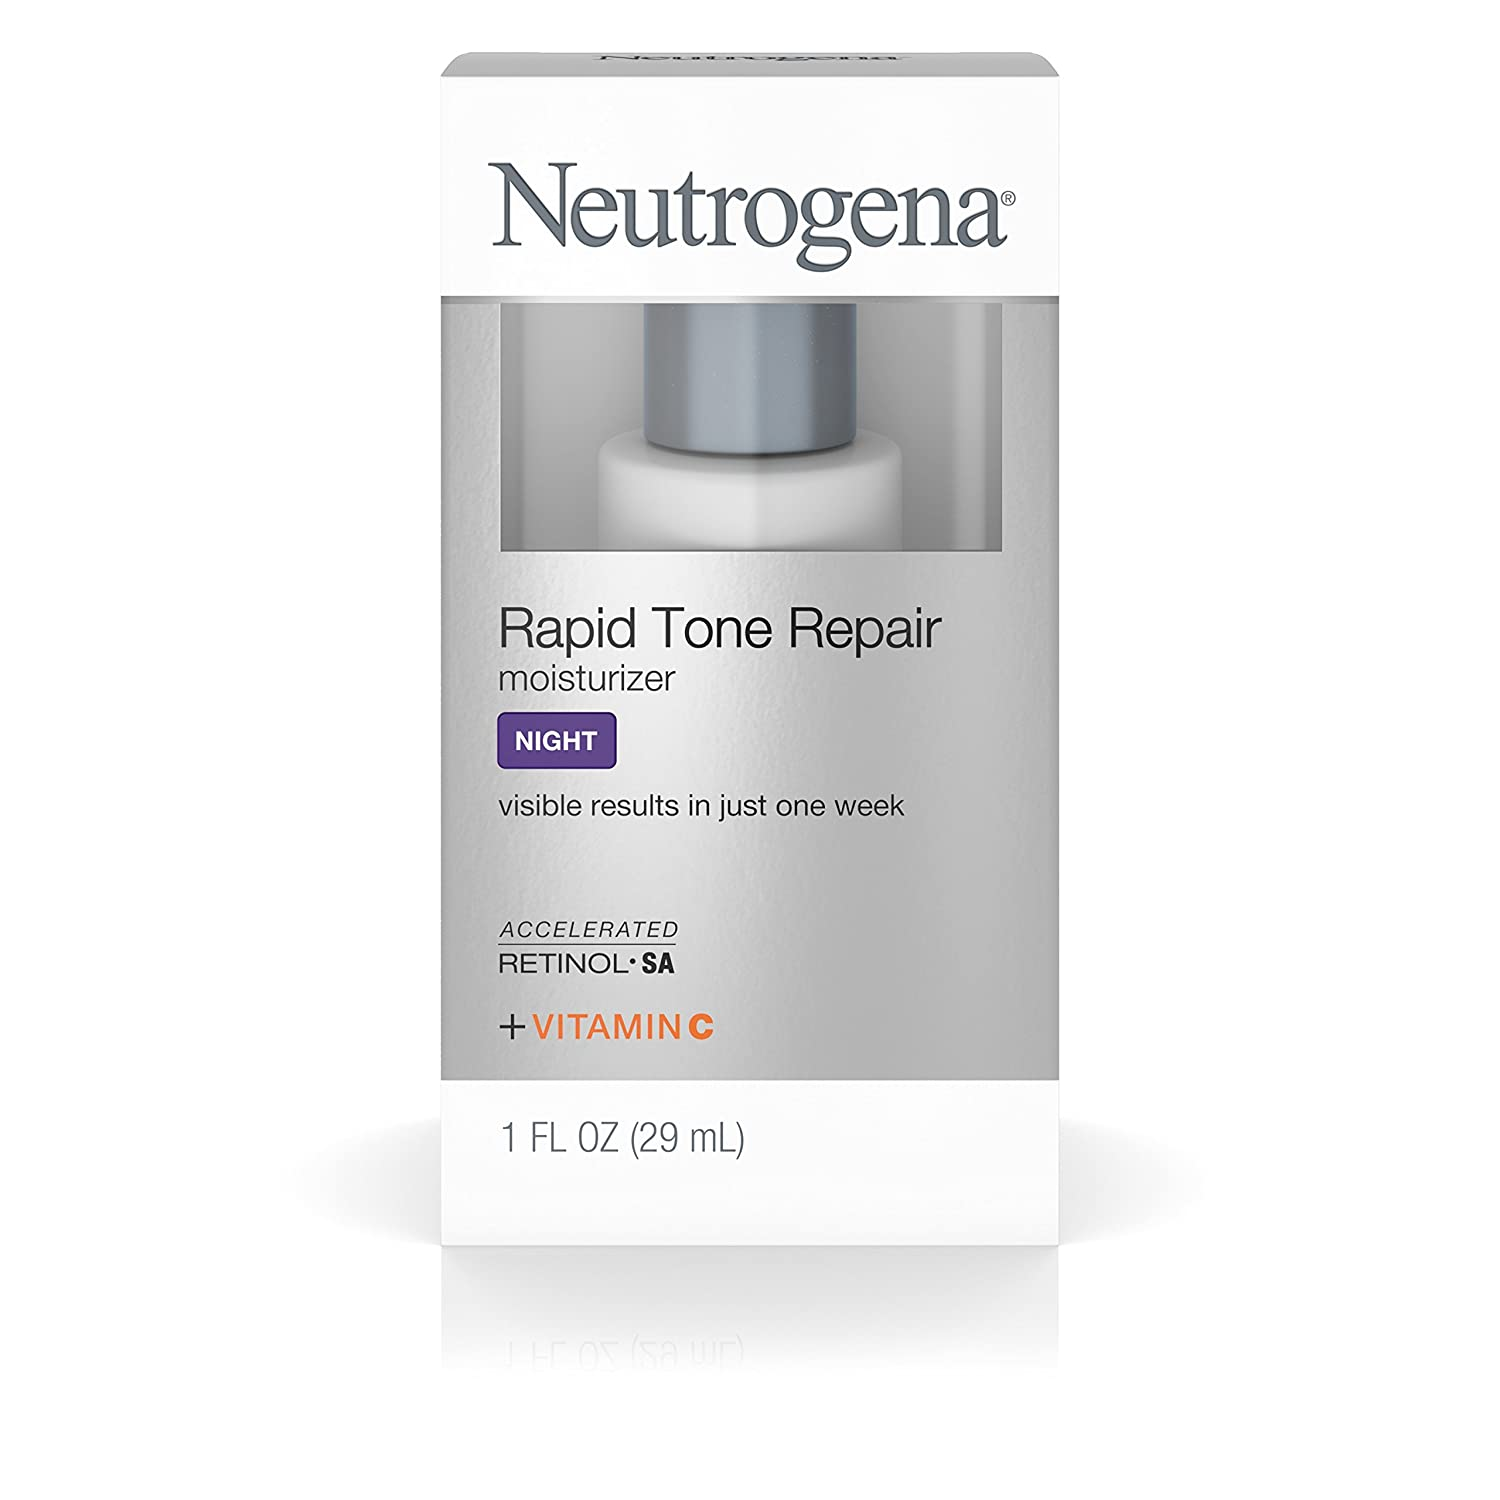 Neutrogena Rapid Tone Repair Moisturizer Night, 1 Ounce 05086